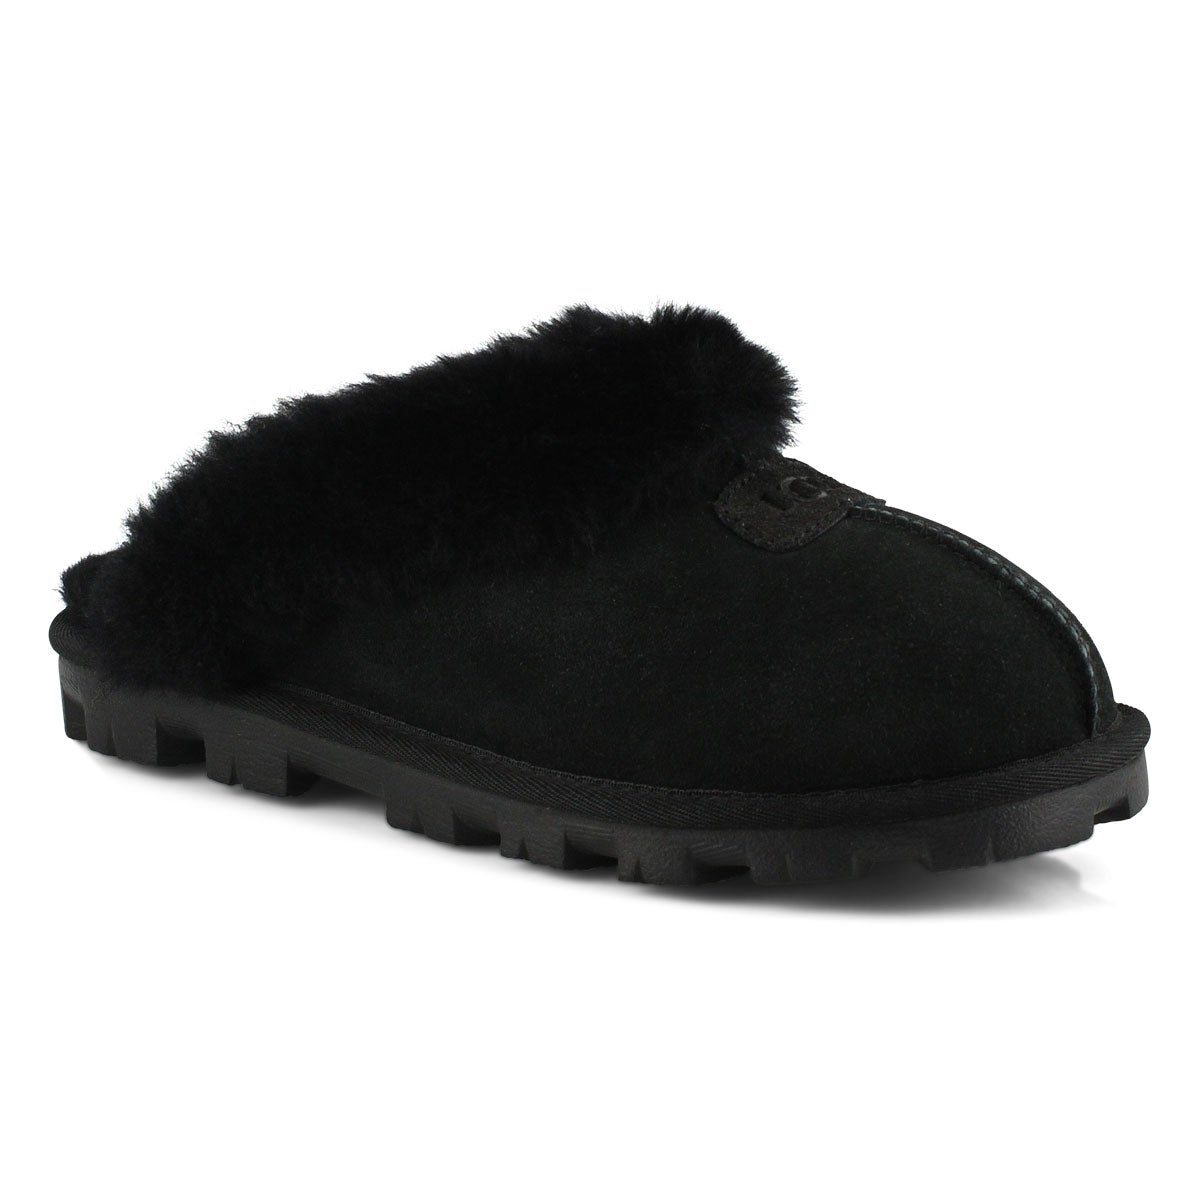 Lds Coquette black sheepskin slipper